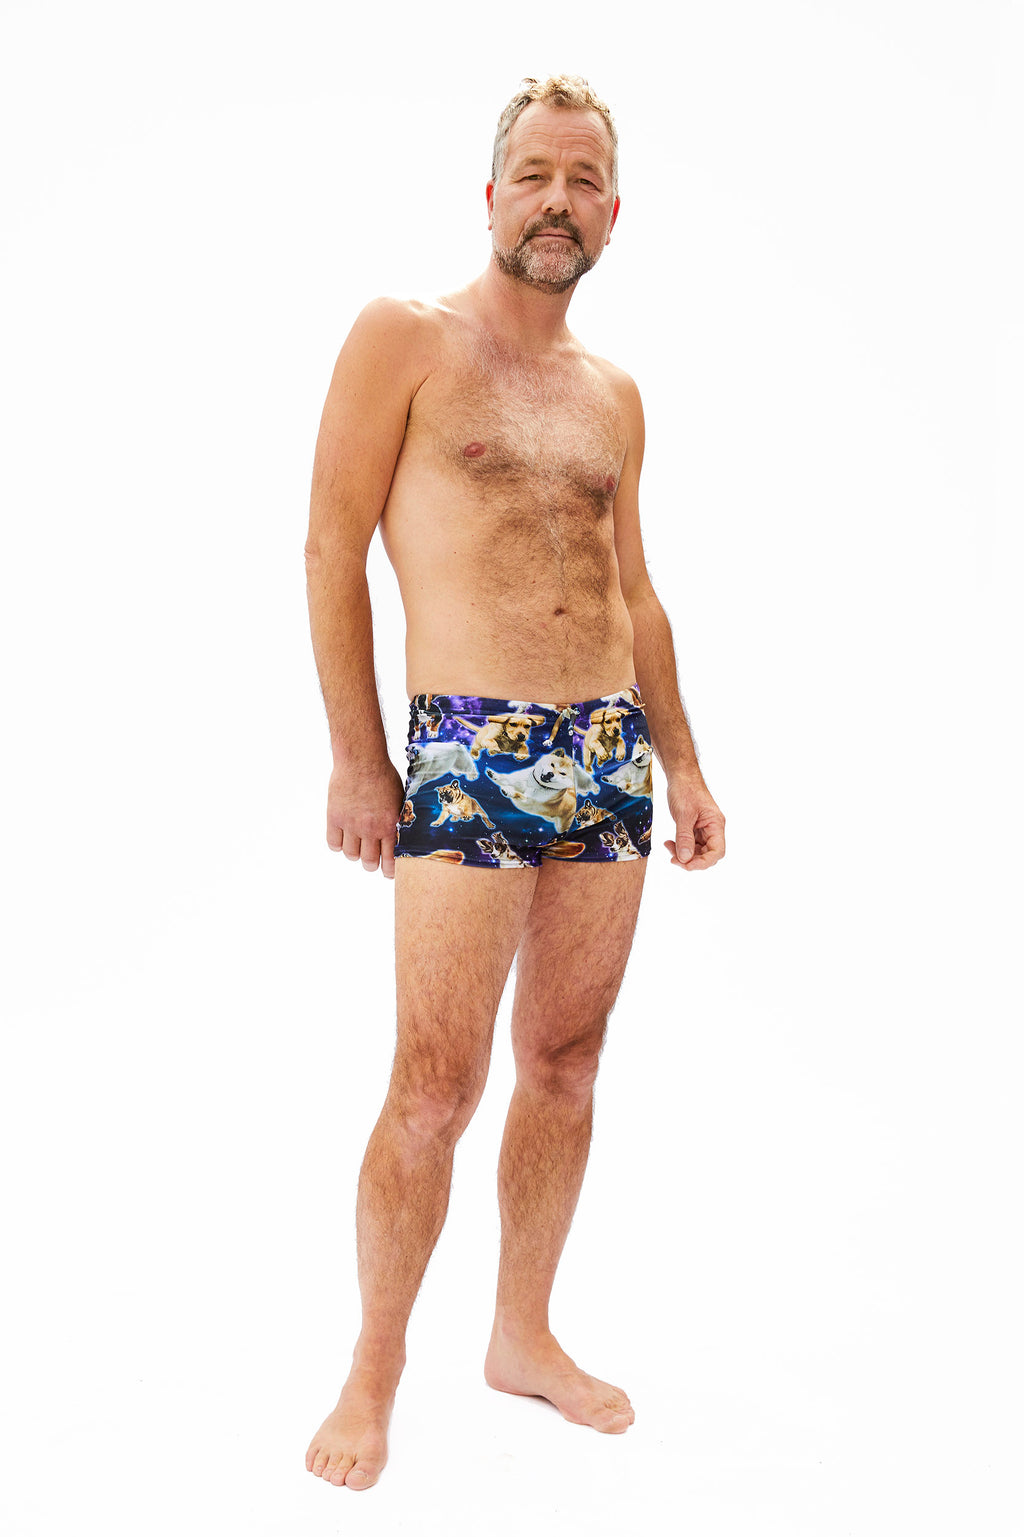 dog pattern swim trunks for men for all body types made in Canada by Bathing Belle Swimwear